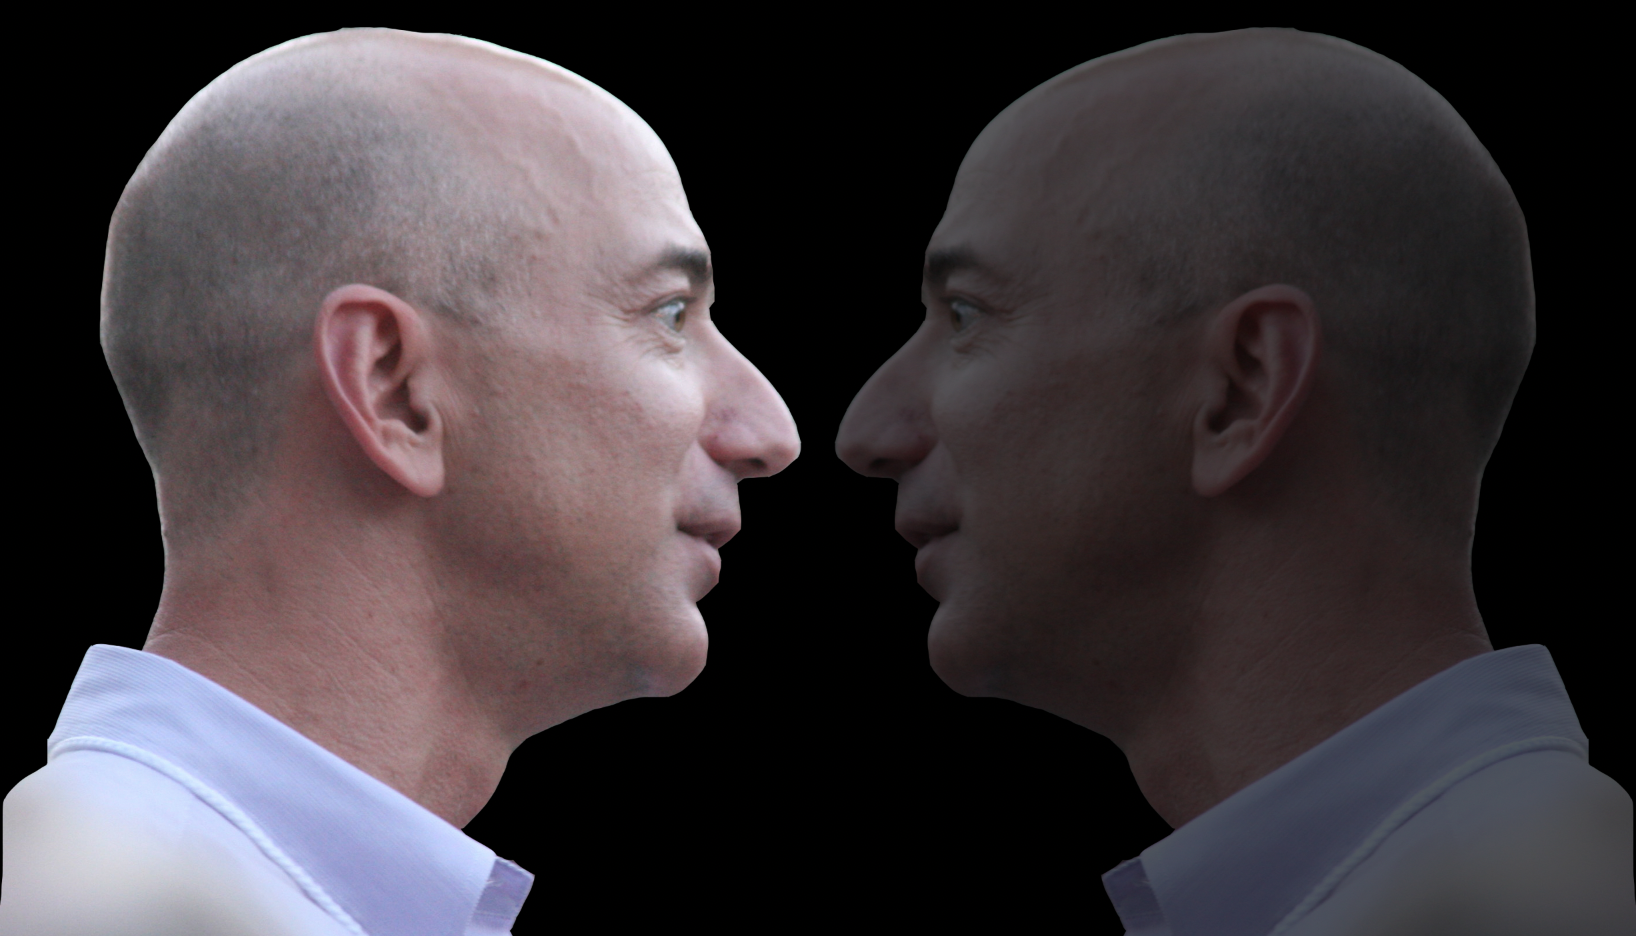 do i really need another 10 billion jeff bezos grins laughs maniacally in mirror